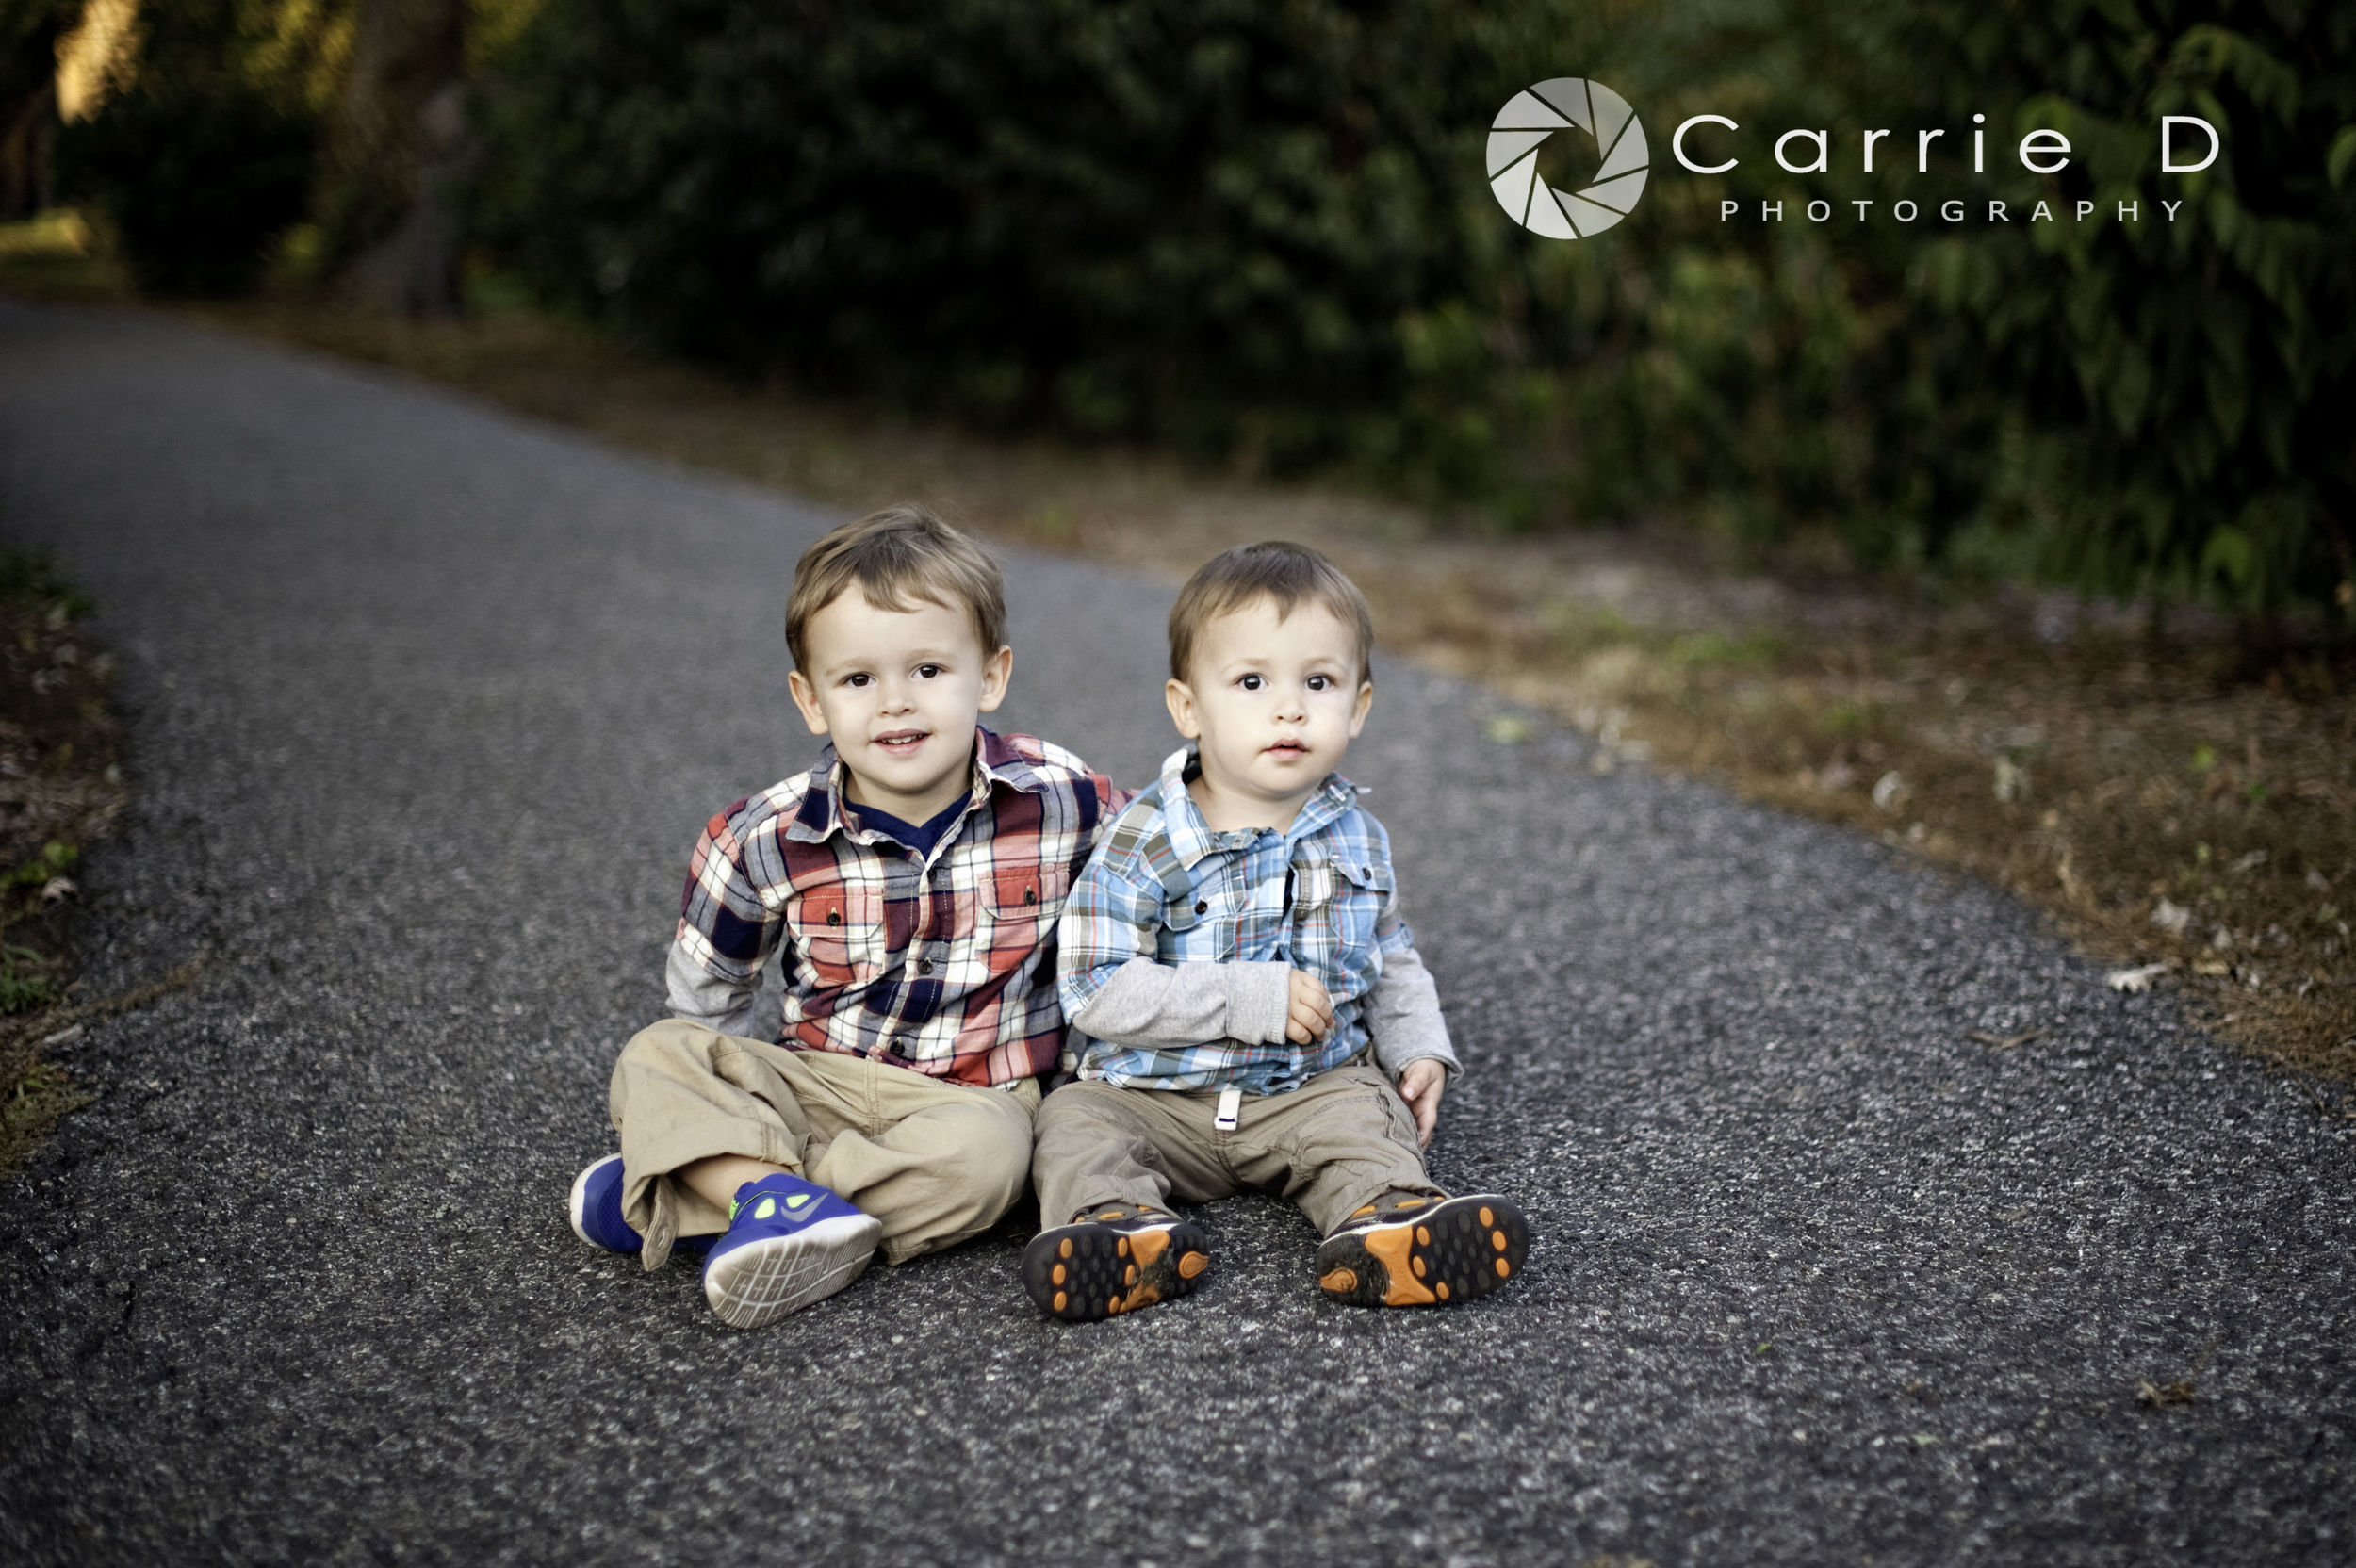 Harford County Photographer – Harford County Portrait Photographer – Harford County Family Photographer – Harford County Child Photographer – Harford County Sibling Photographer – Harford County Natural Light Photographer – Harford County Lifestyle Photographer – Harford County Natural Light Portrait Photographer - Maryland Photographer – Maryland Portrait Photographer – Maryland Family Photographer – Maryland Child Photographer – Maryland Sibling Photographer – Maryland Natural Light Photographer – Maryland Lifestyle Photographer – Maryland Natural Light Portrait Photographer - Lindsay_DSC_9960B